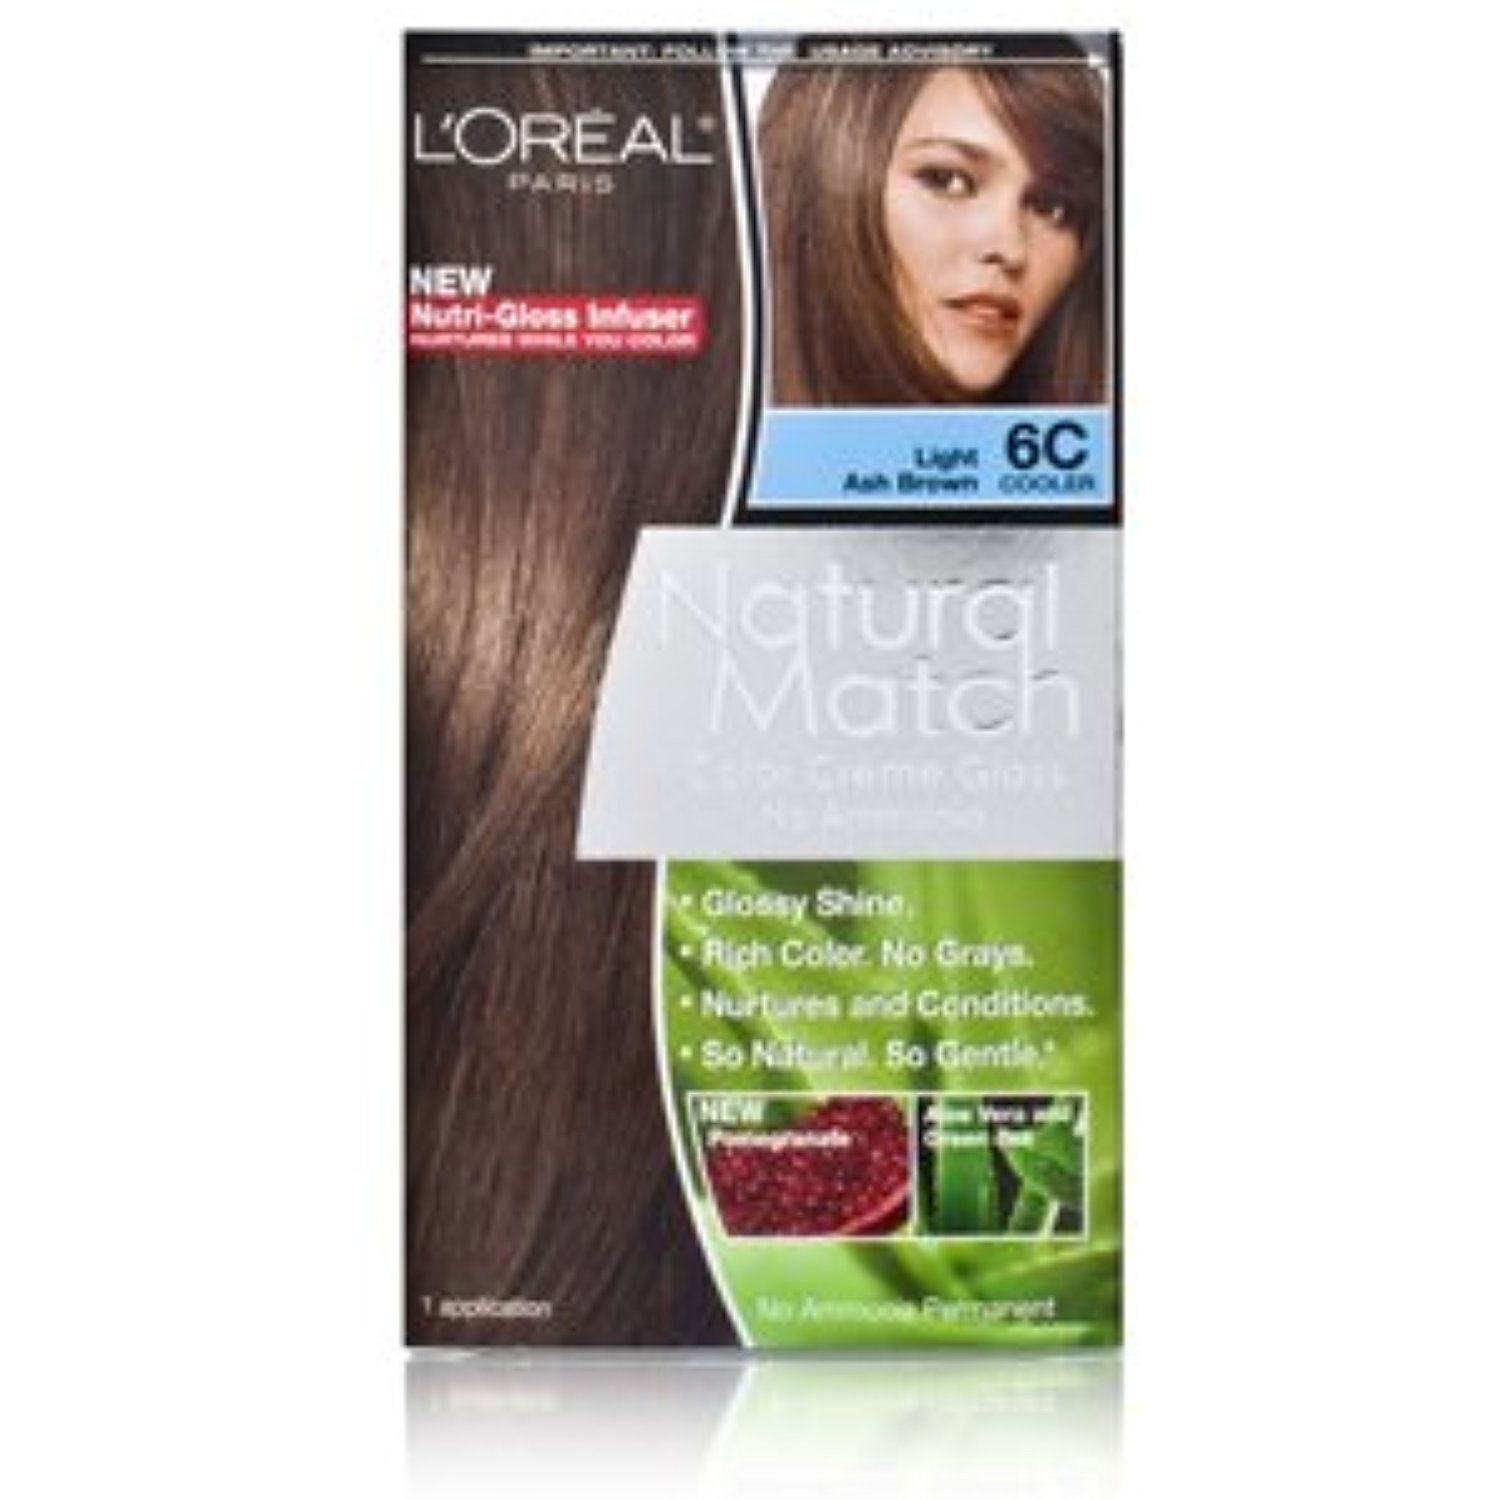 Loreal Natural Match Hair Colour Light Ash Brown Click On The